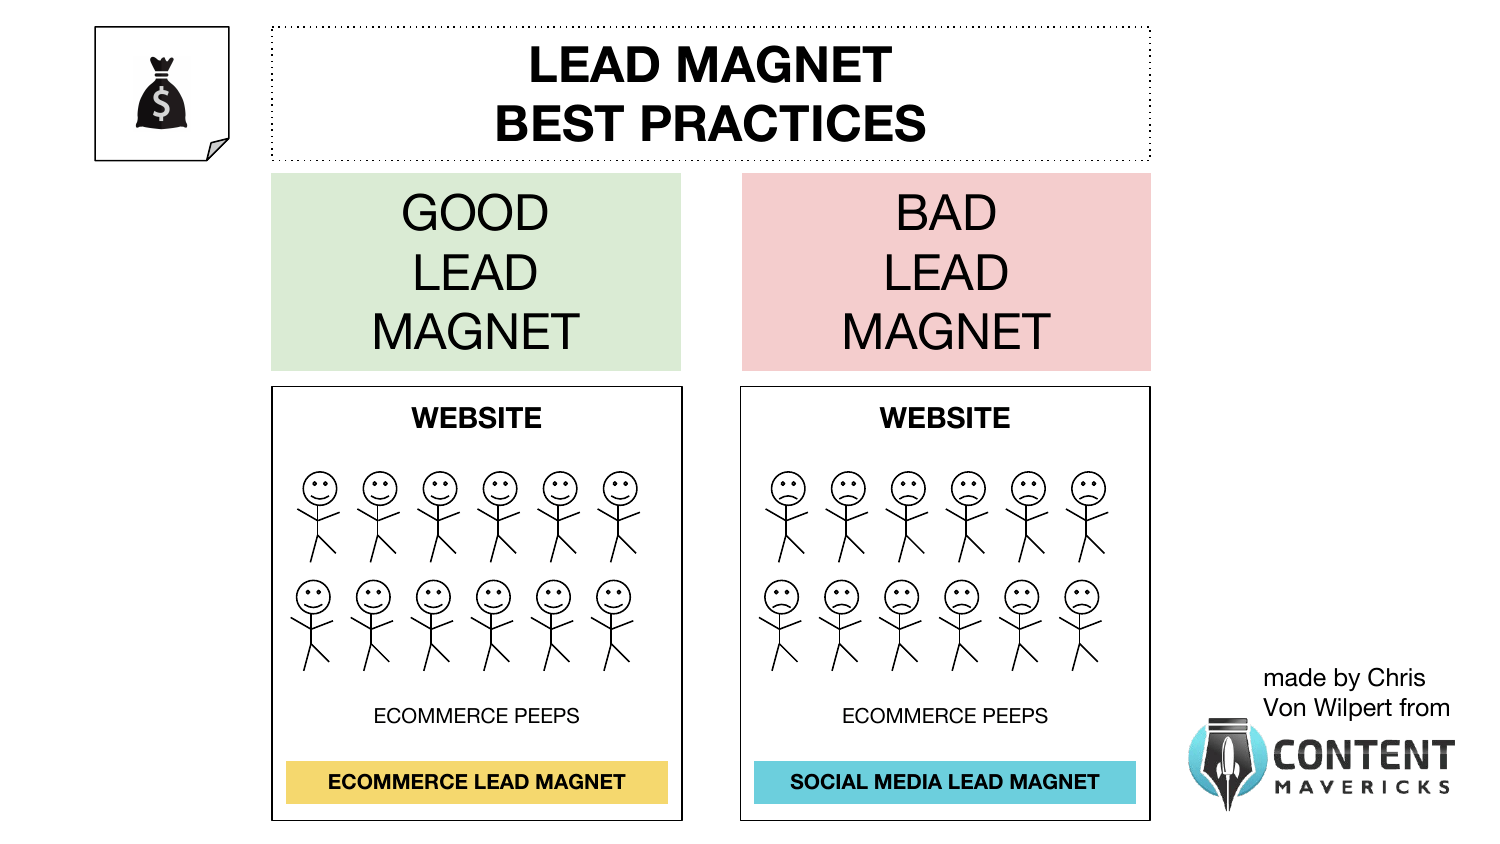 lead magnet content distribution best practices image